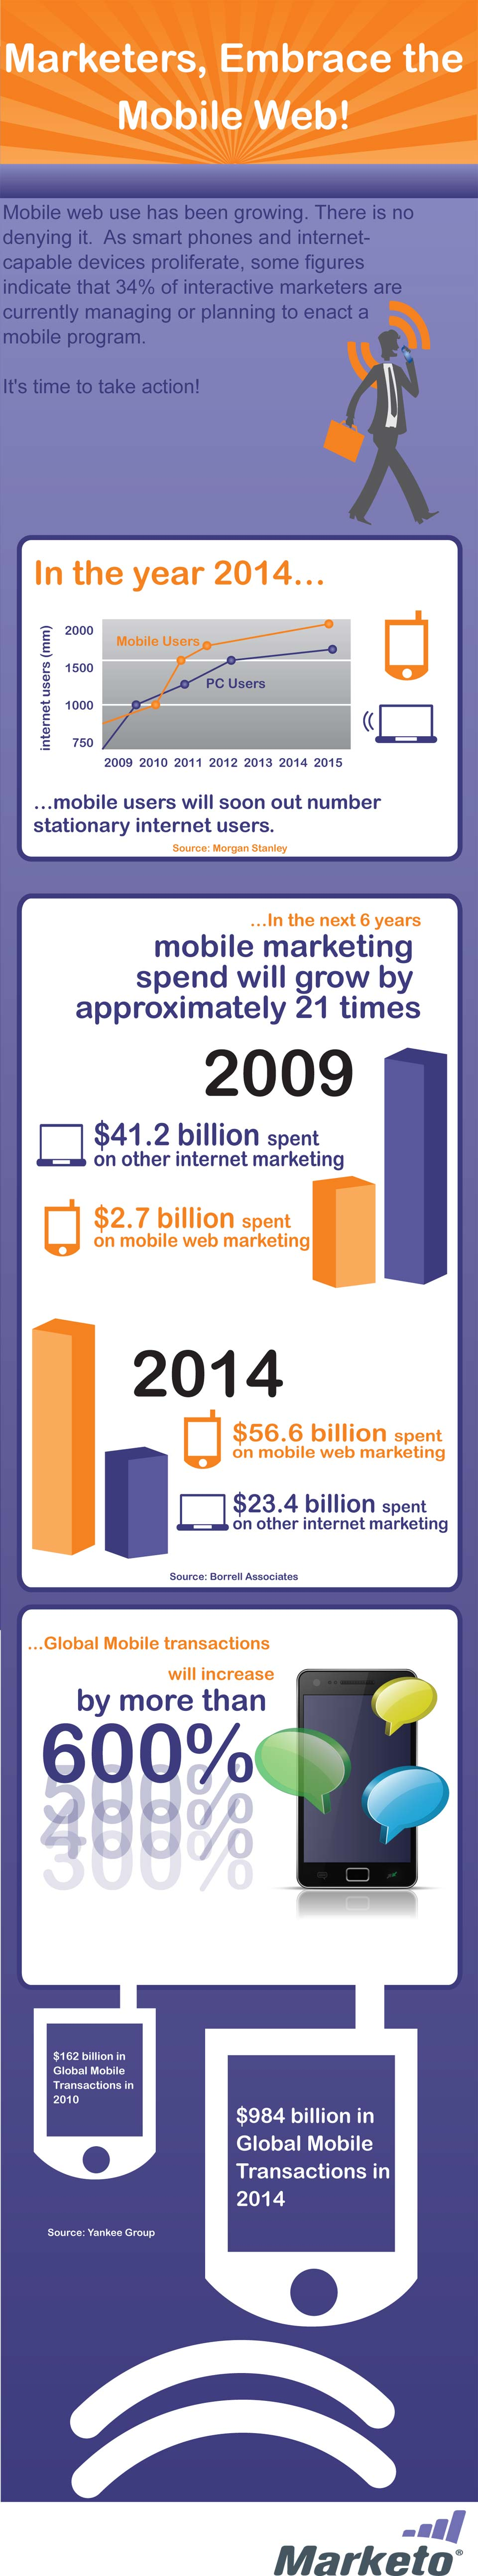 Embrace the Mobile Web Infographic by Marketo